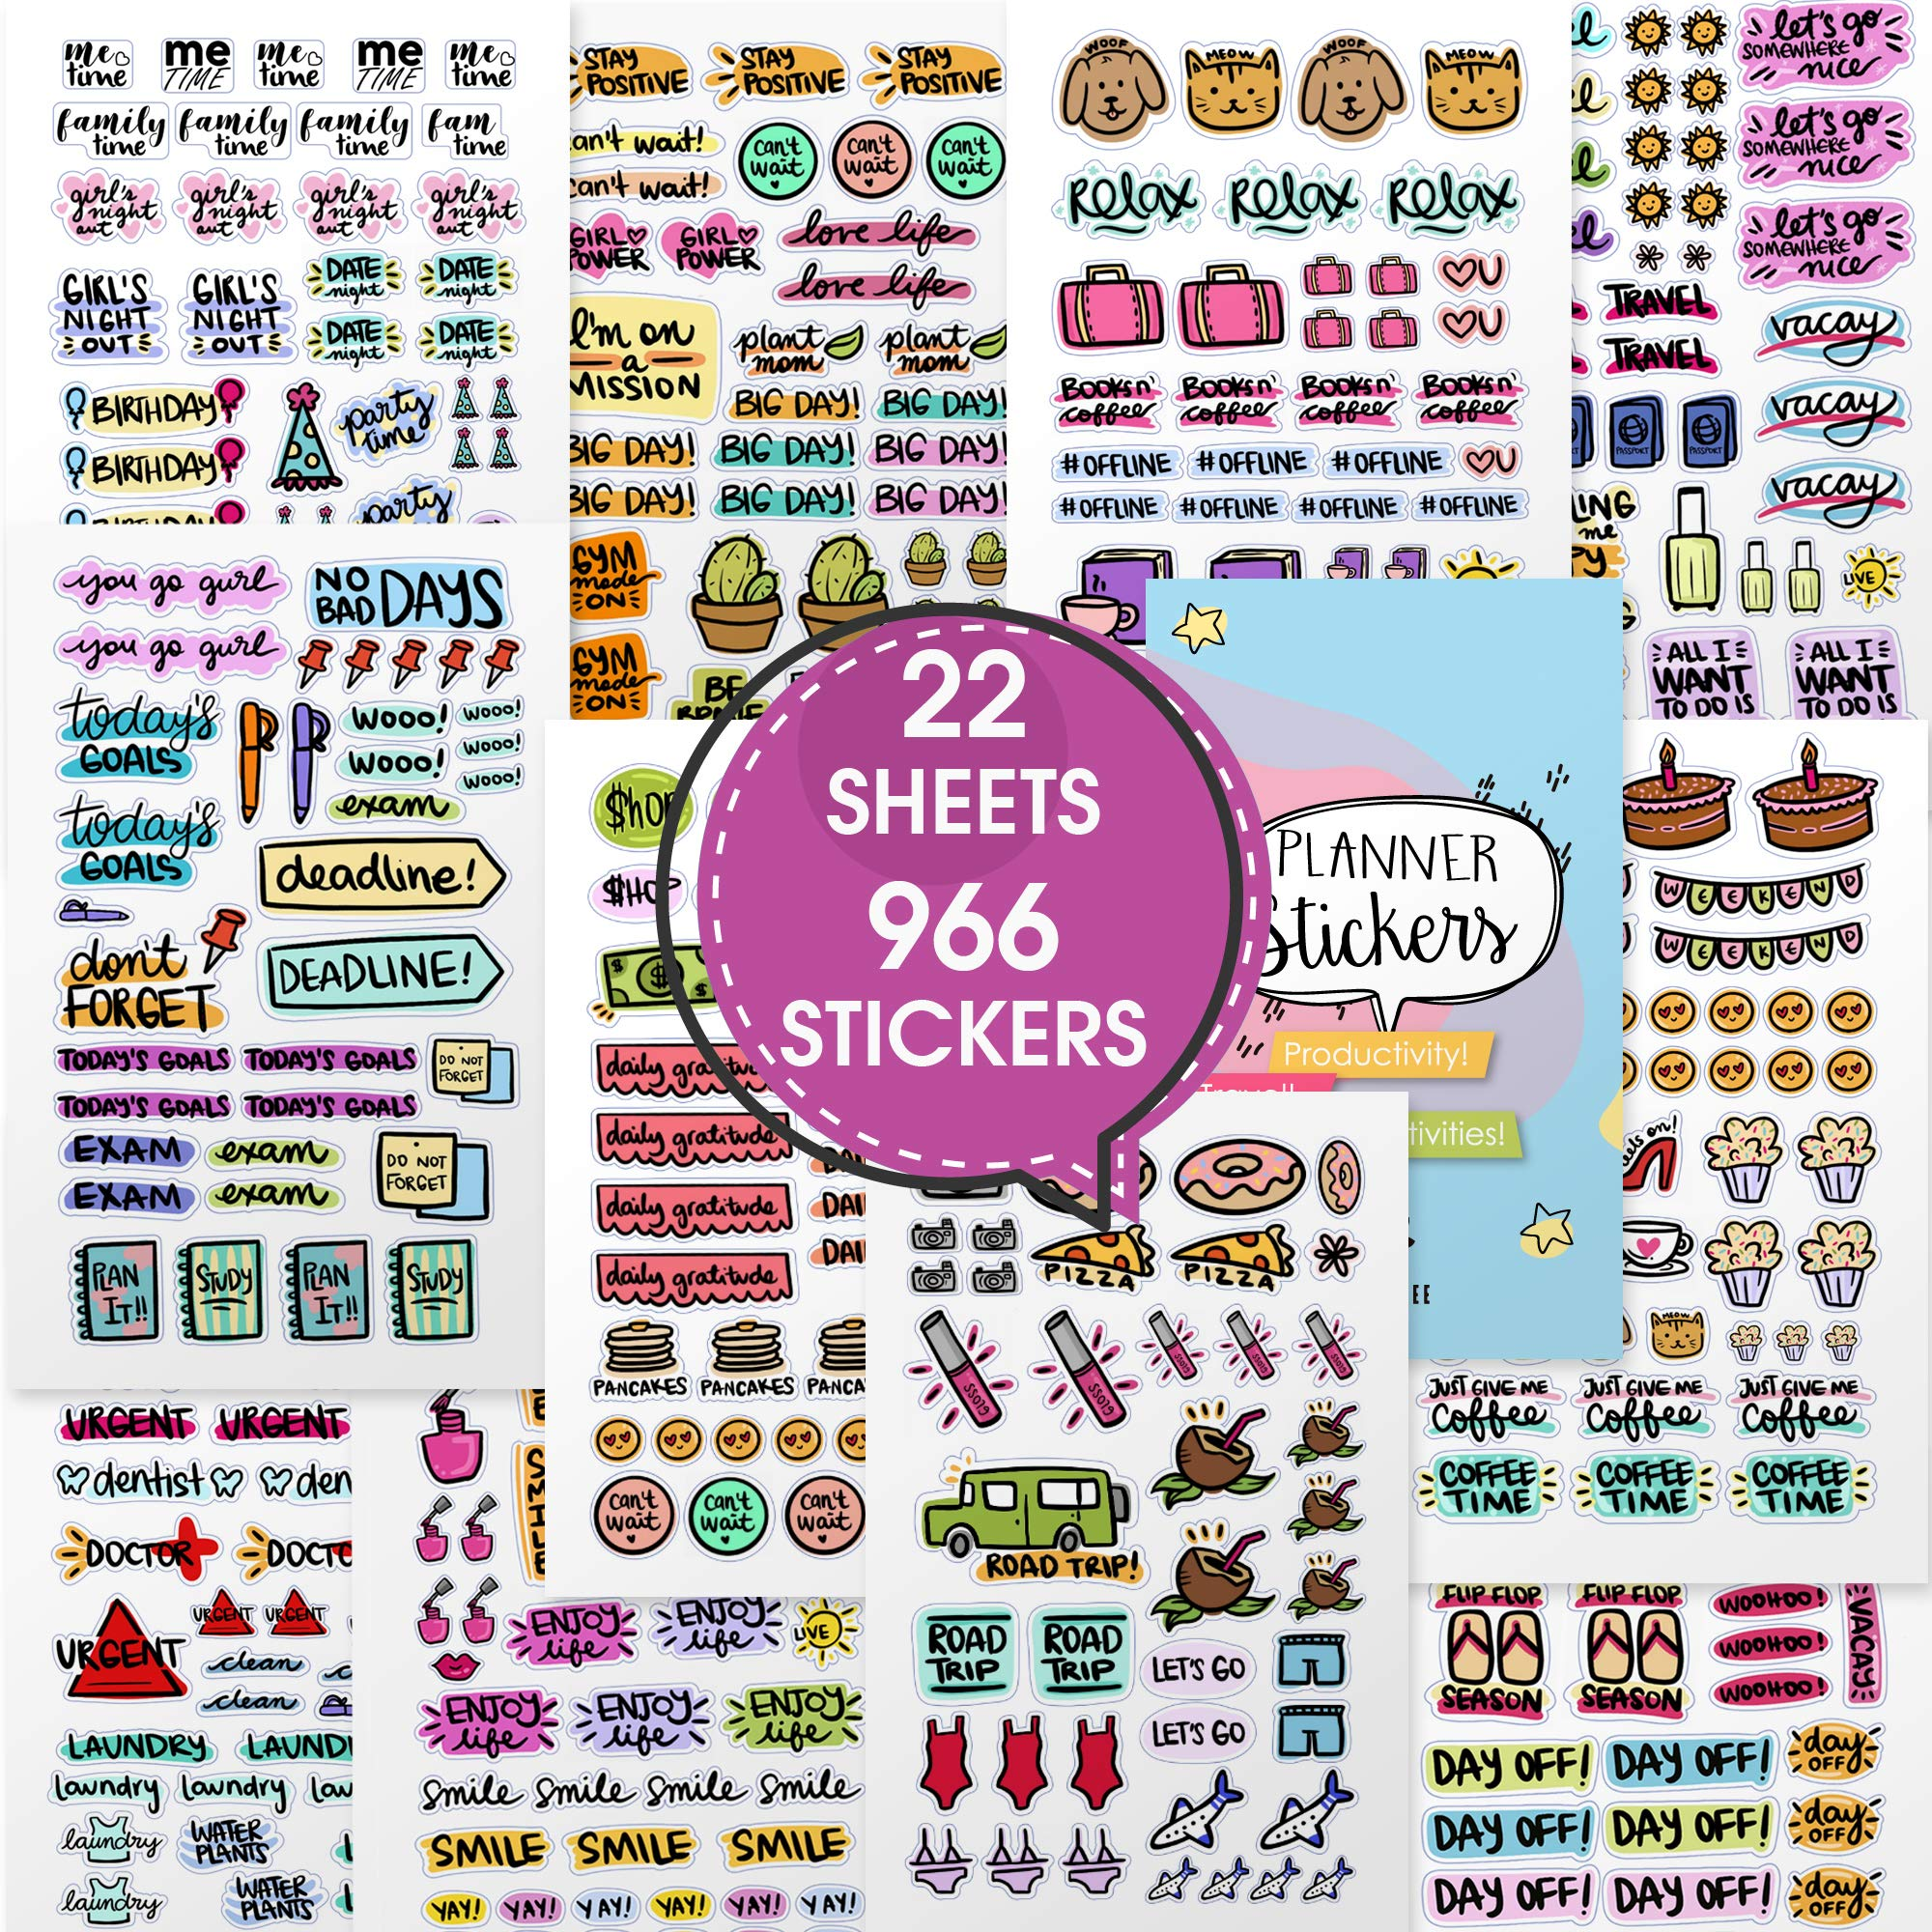 Planner Stickers for every occasion